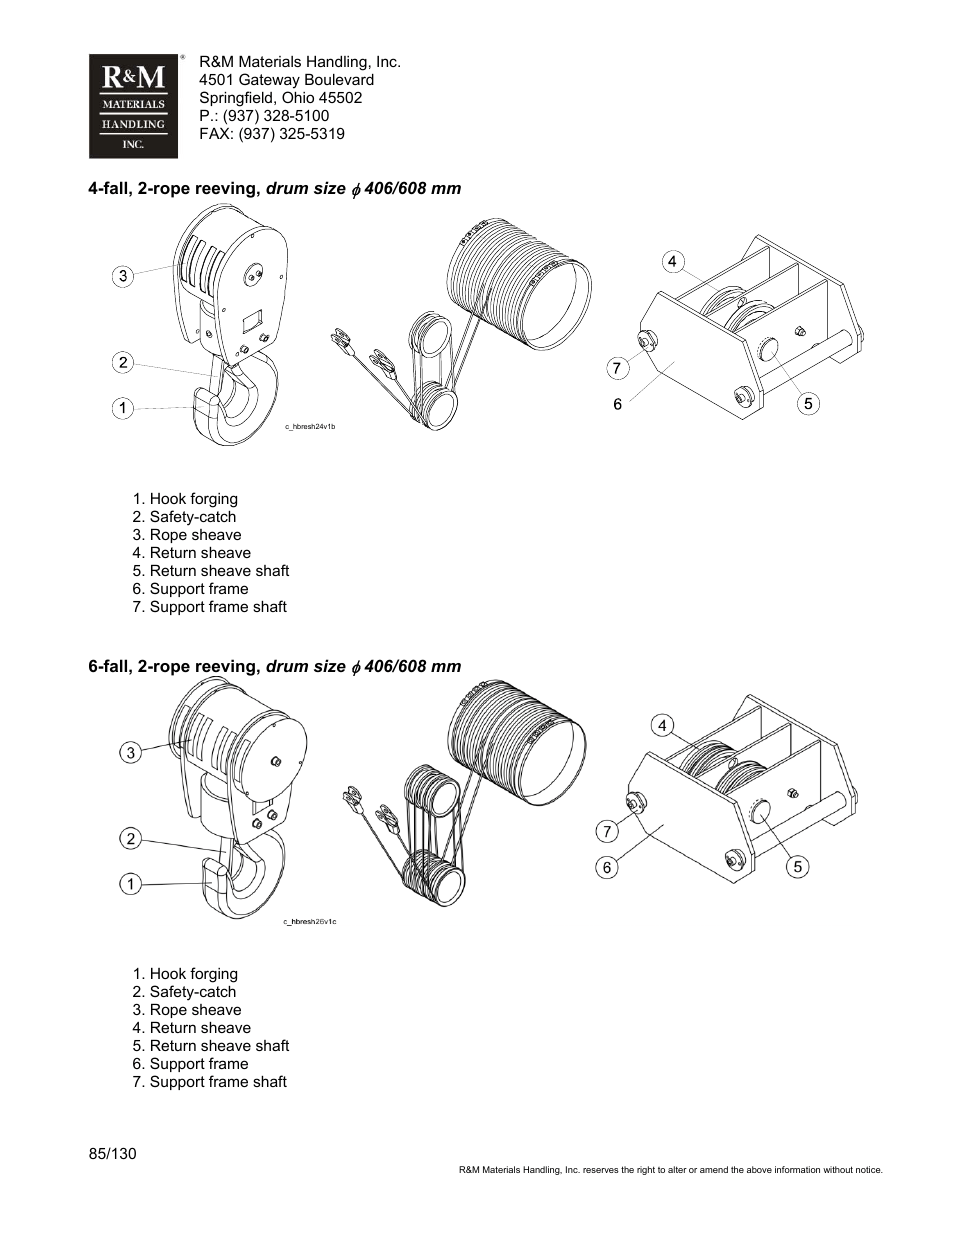 hight resolution of r m materials handling wire rope hoists service user manual page 85 130